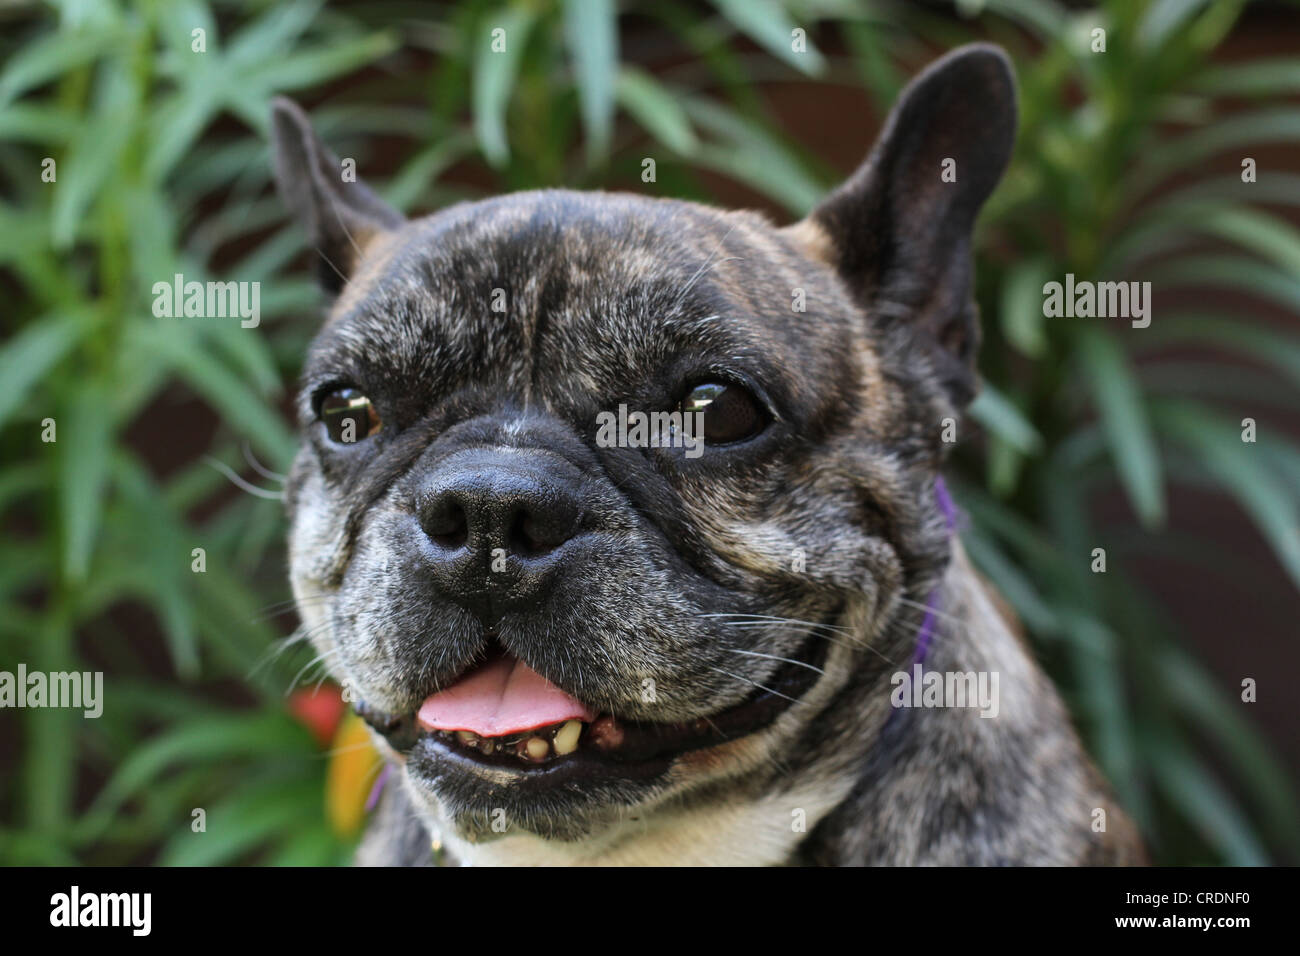 A close up of the face of a brindle colored French Bulldog. - Stock Image